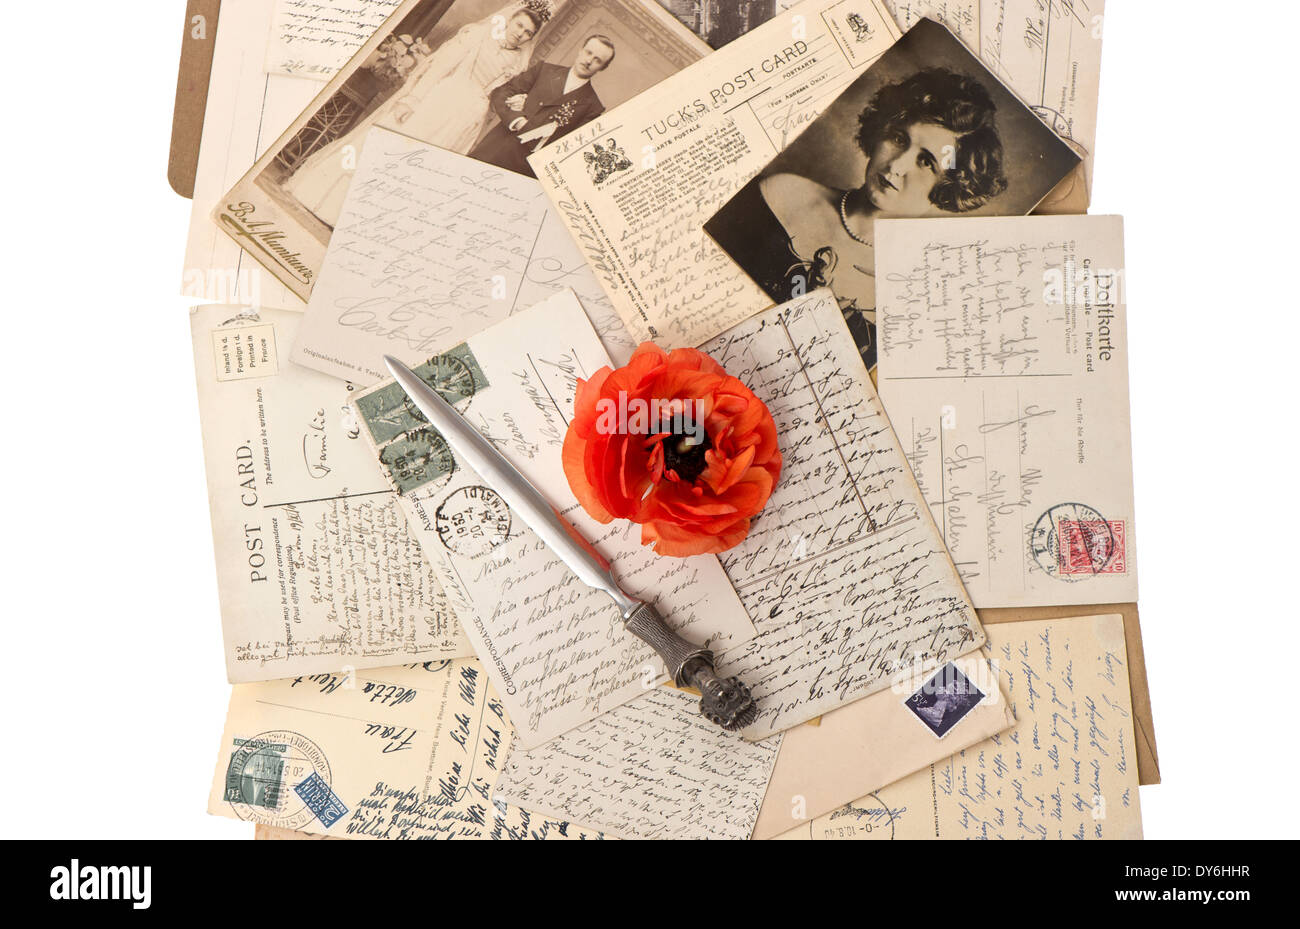 vintage background with old photos, post cards and antique letter opener - Stock Image